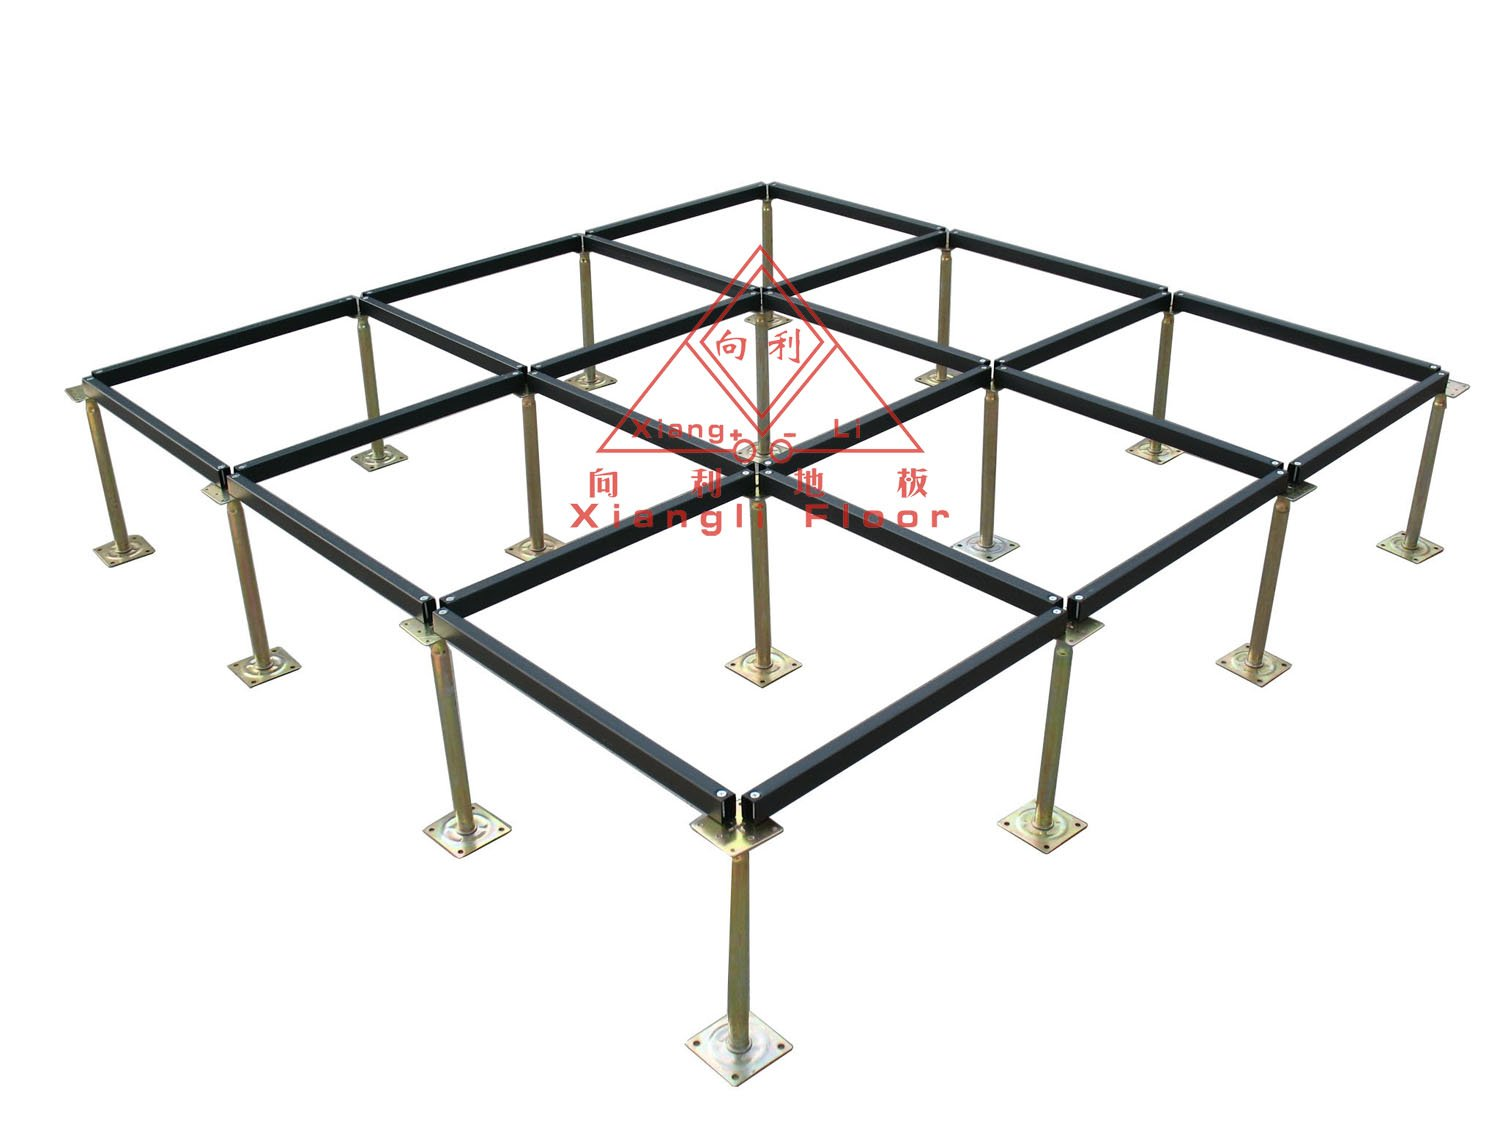 Accessories System For Steel Raised Floor - Buy Stringer,Access ...